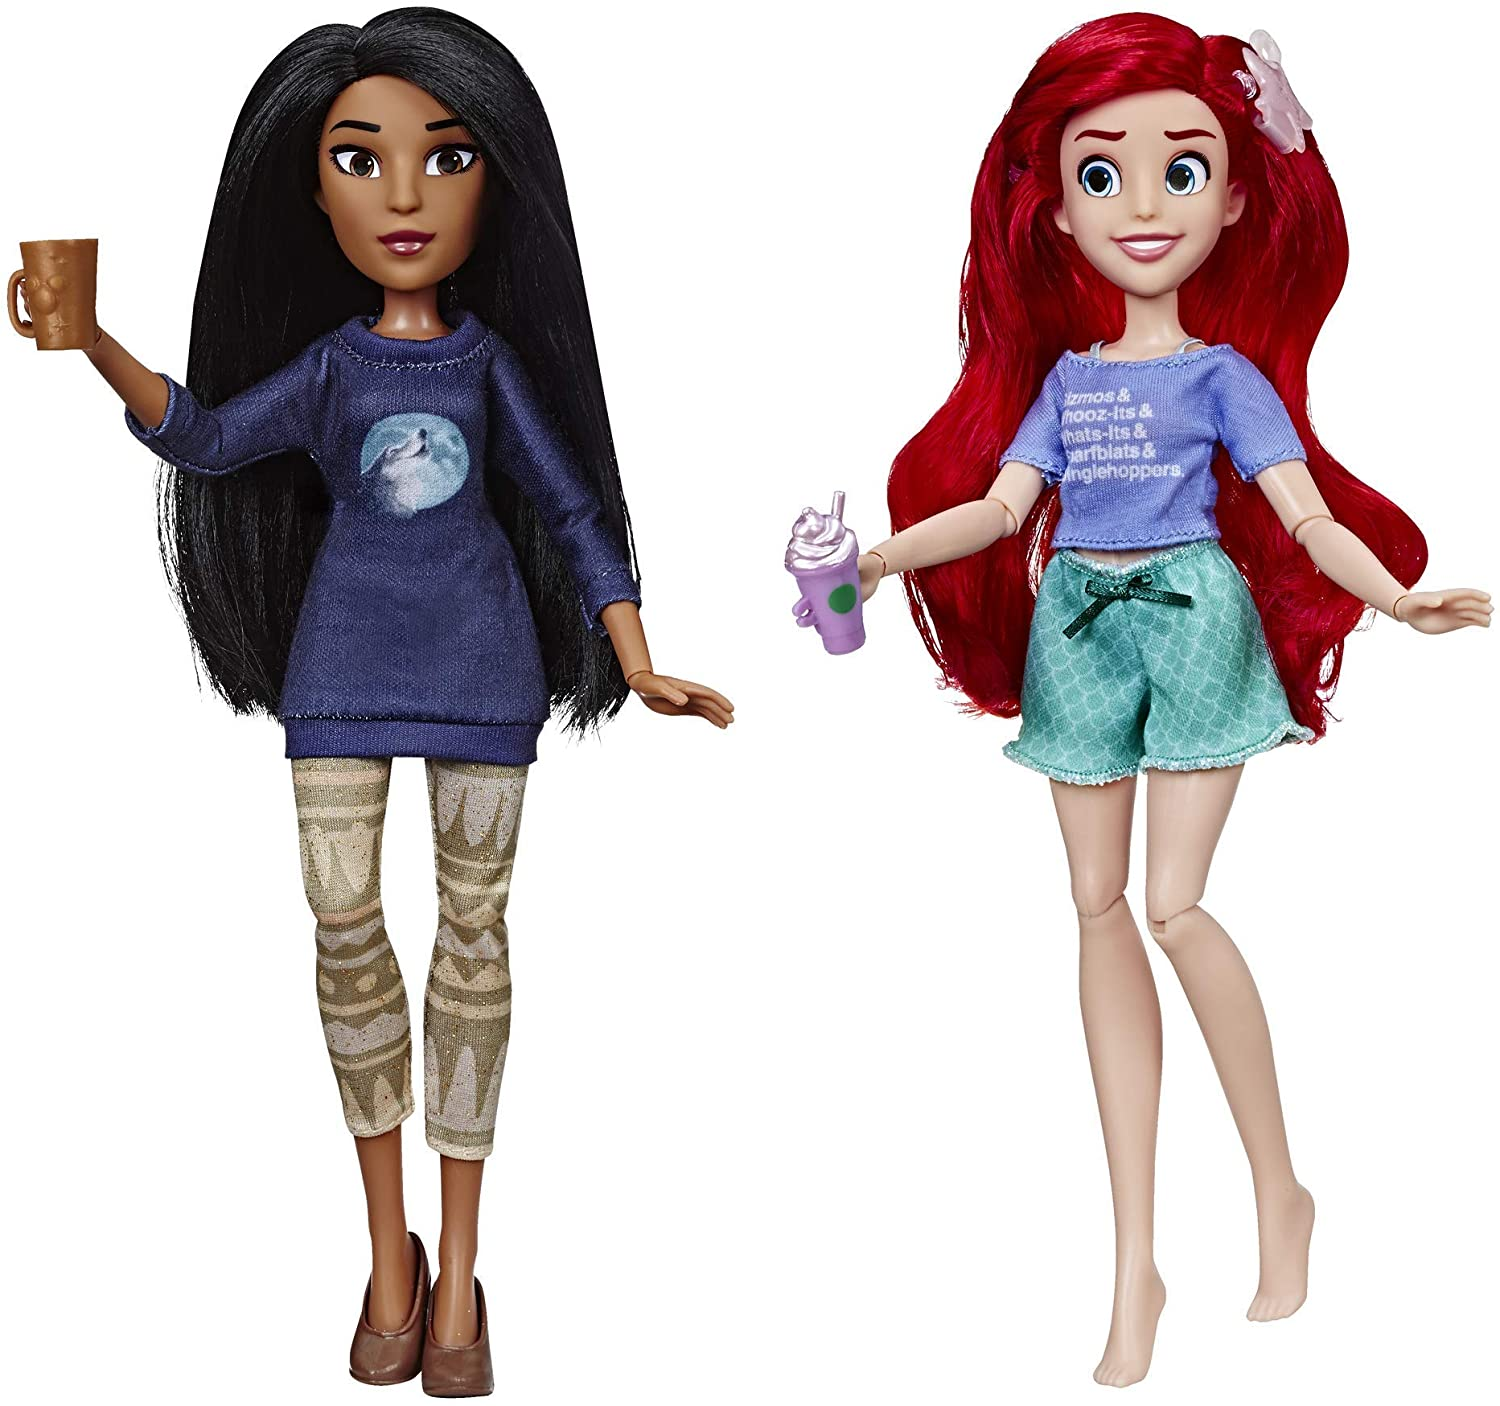 Amazon Com Disney Princess Ralph Breaks The Internet Movie Dolls Ariel Pocahontas Dolls With Comfy Clothes Accessories Toys Games